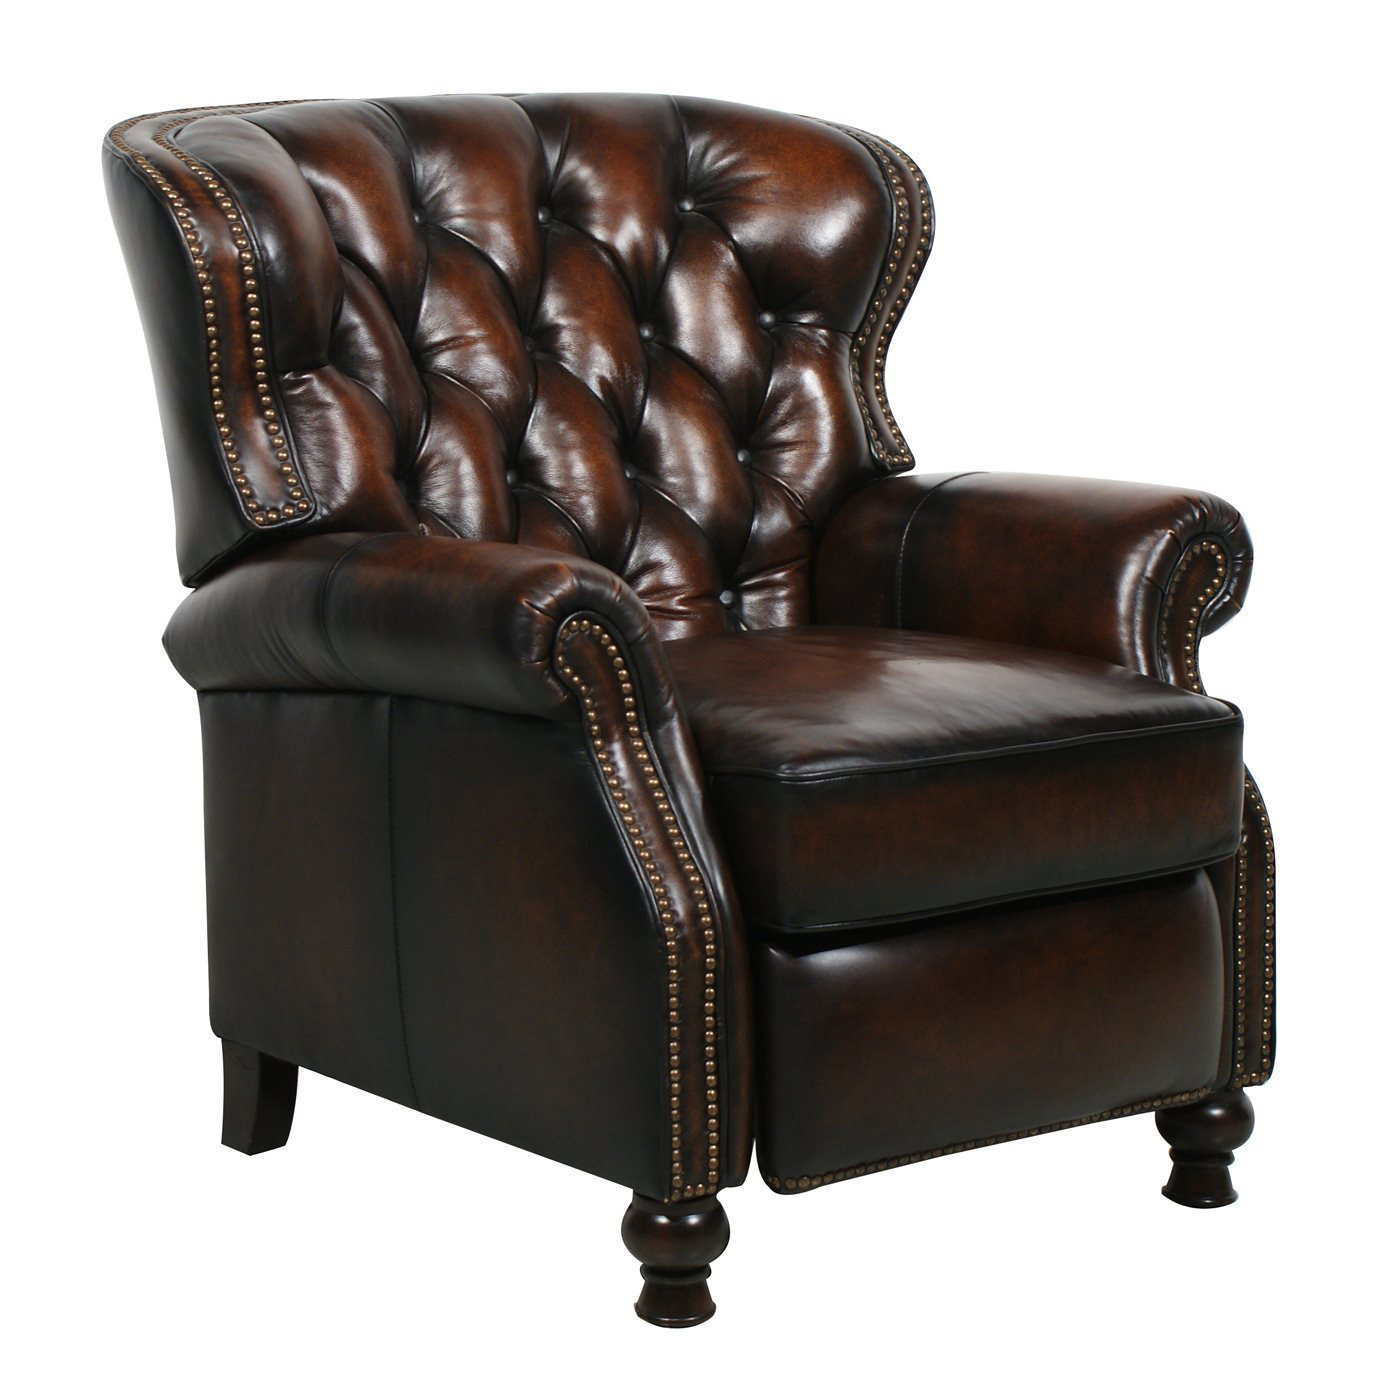 barcalounger presidential ii leather recliner chair - leather